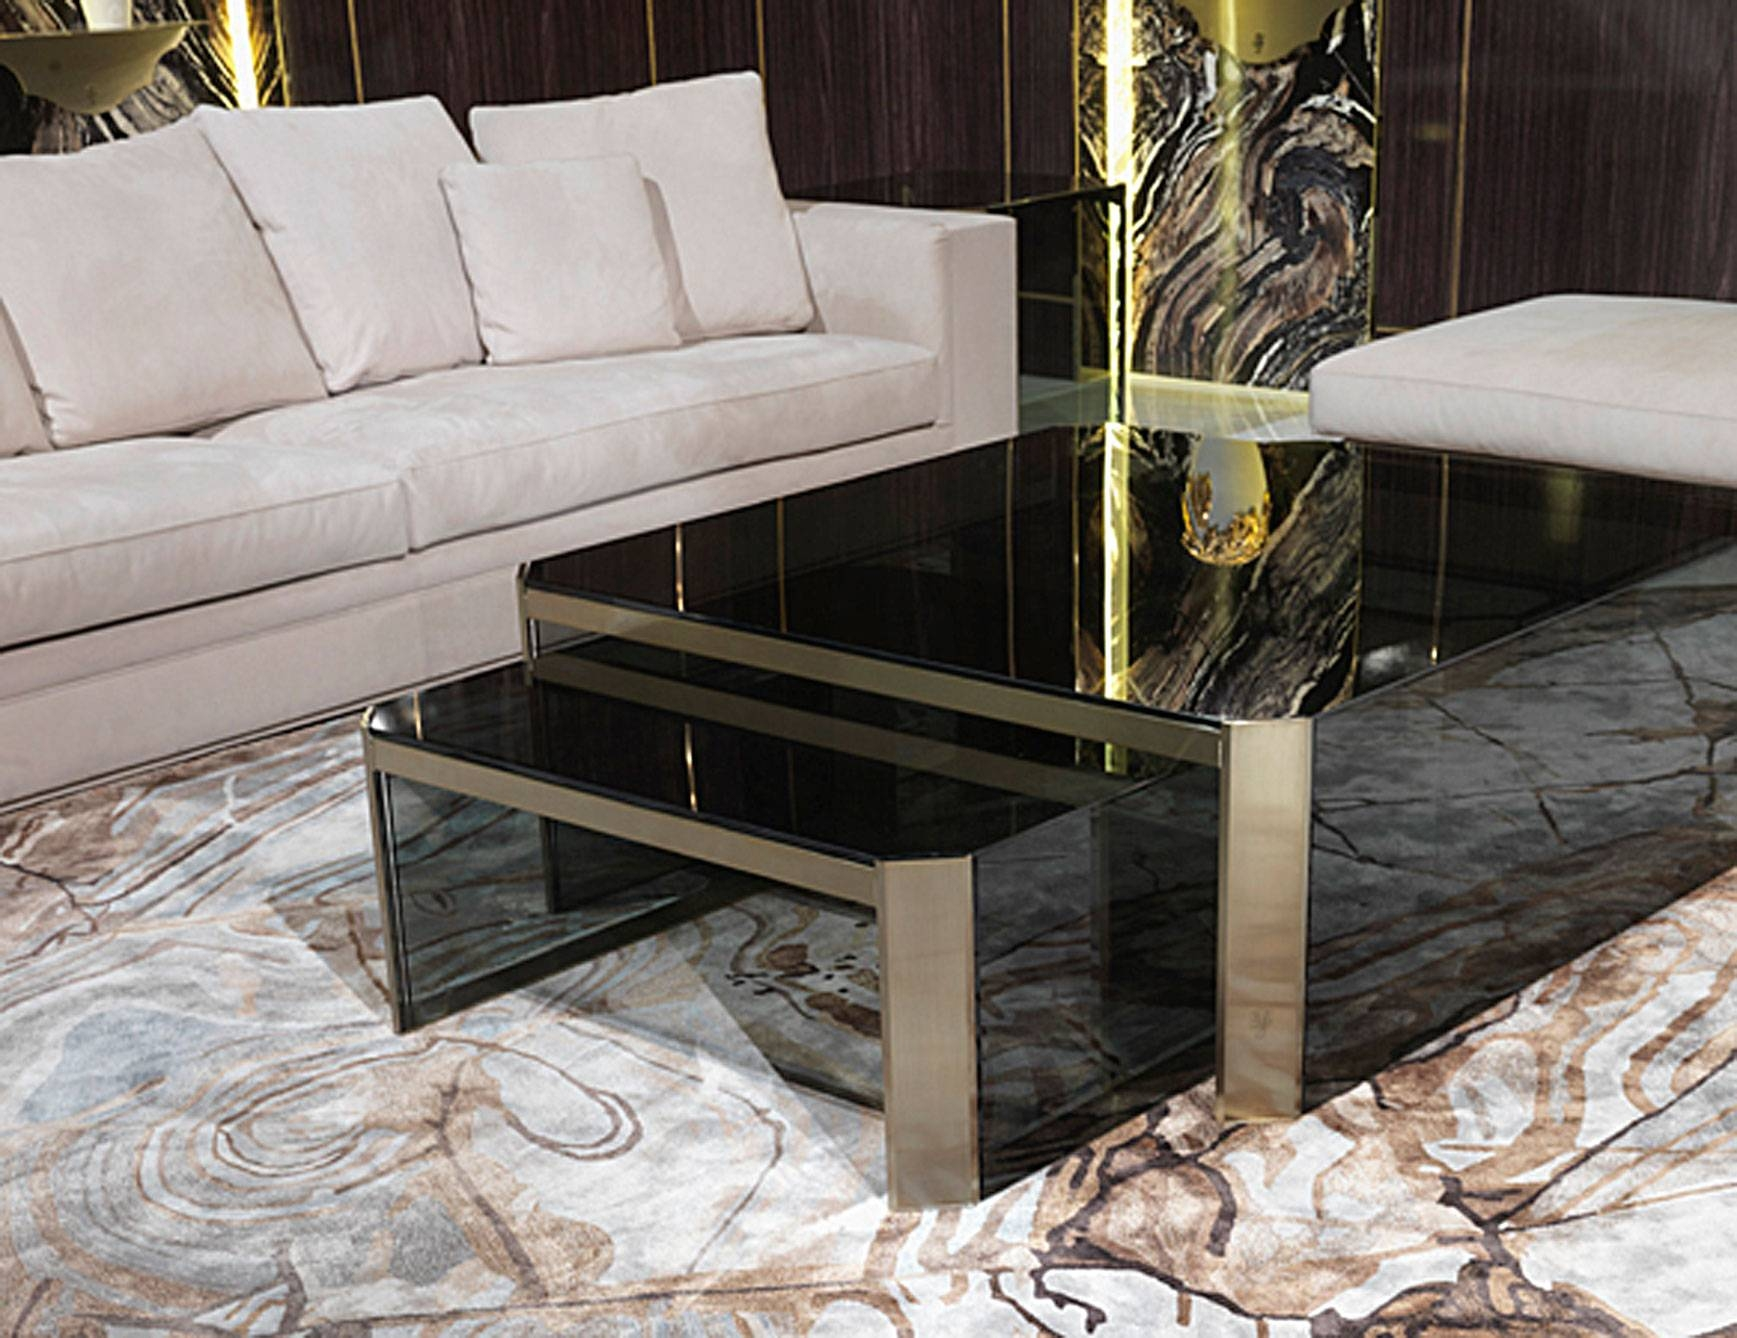 Designer Italian Luxury High End Coffee Tables: Nella Vetrina with regard  to Luxury Coffee Tables